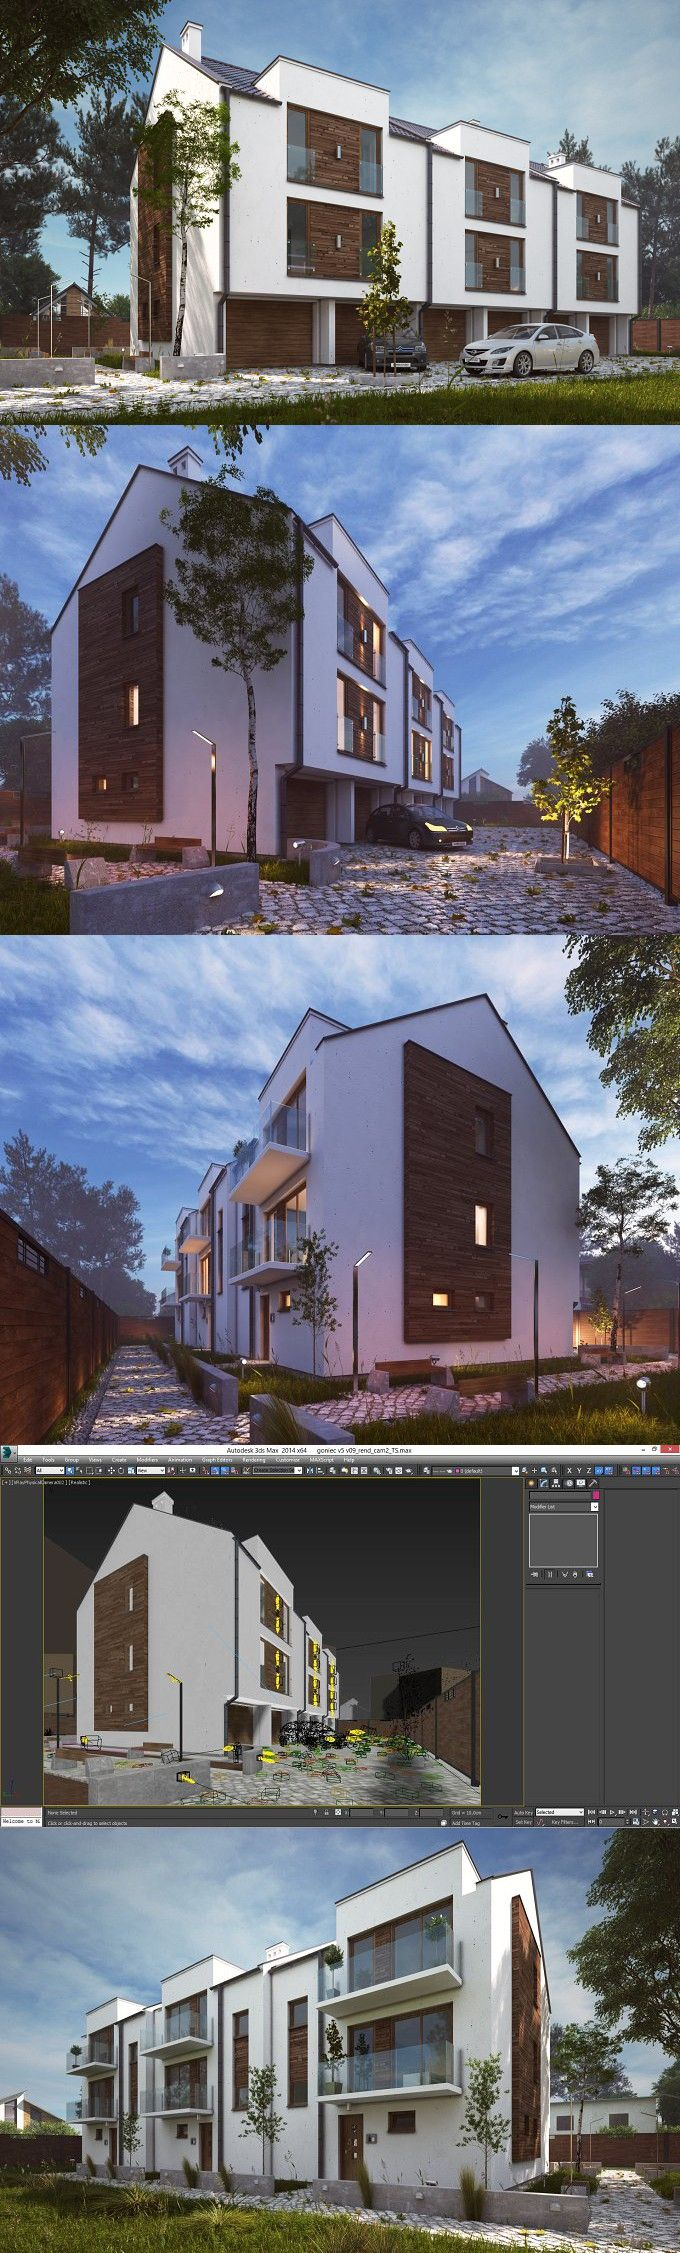 , Apartments Vray Night Day HDRI Scene. 3D Architecture, Hygen Blogs 2020, Hygen Blogs 2020